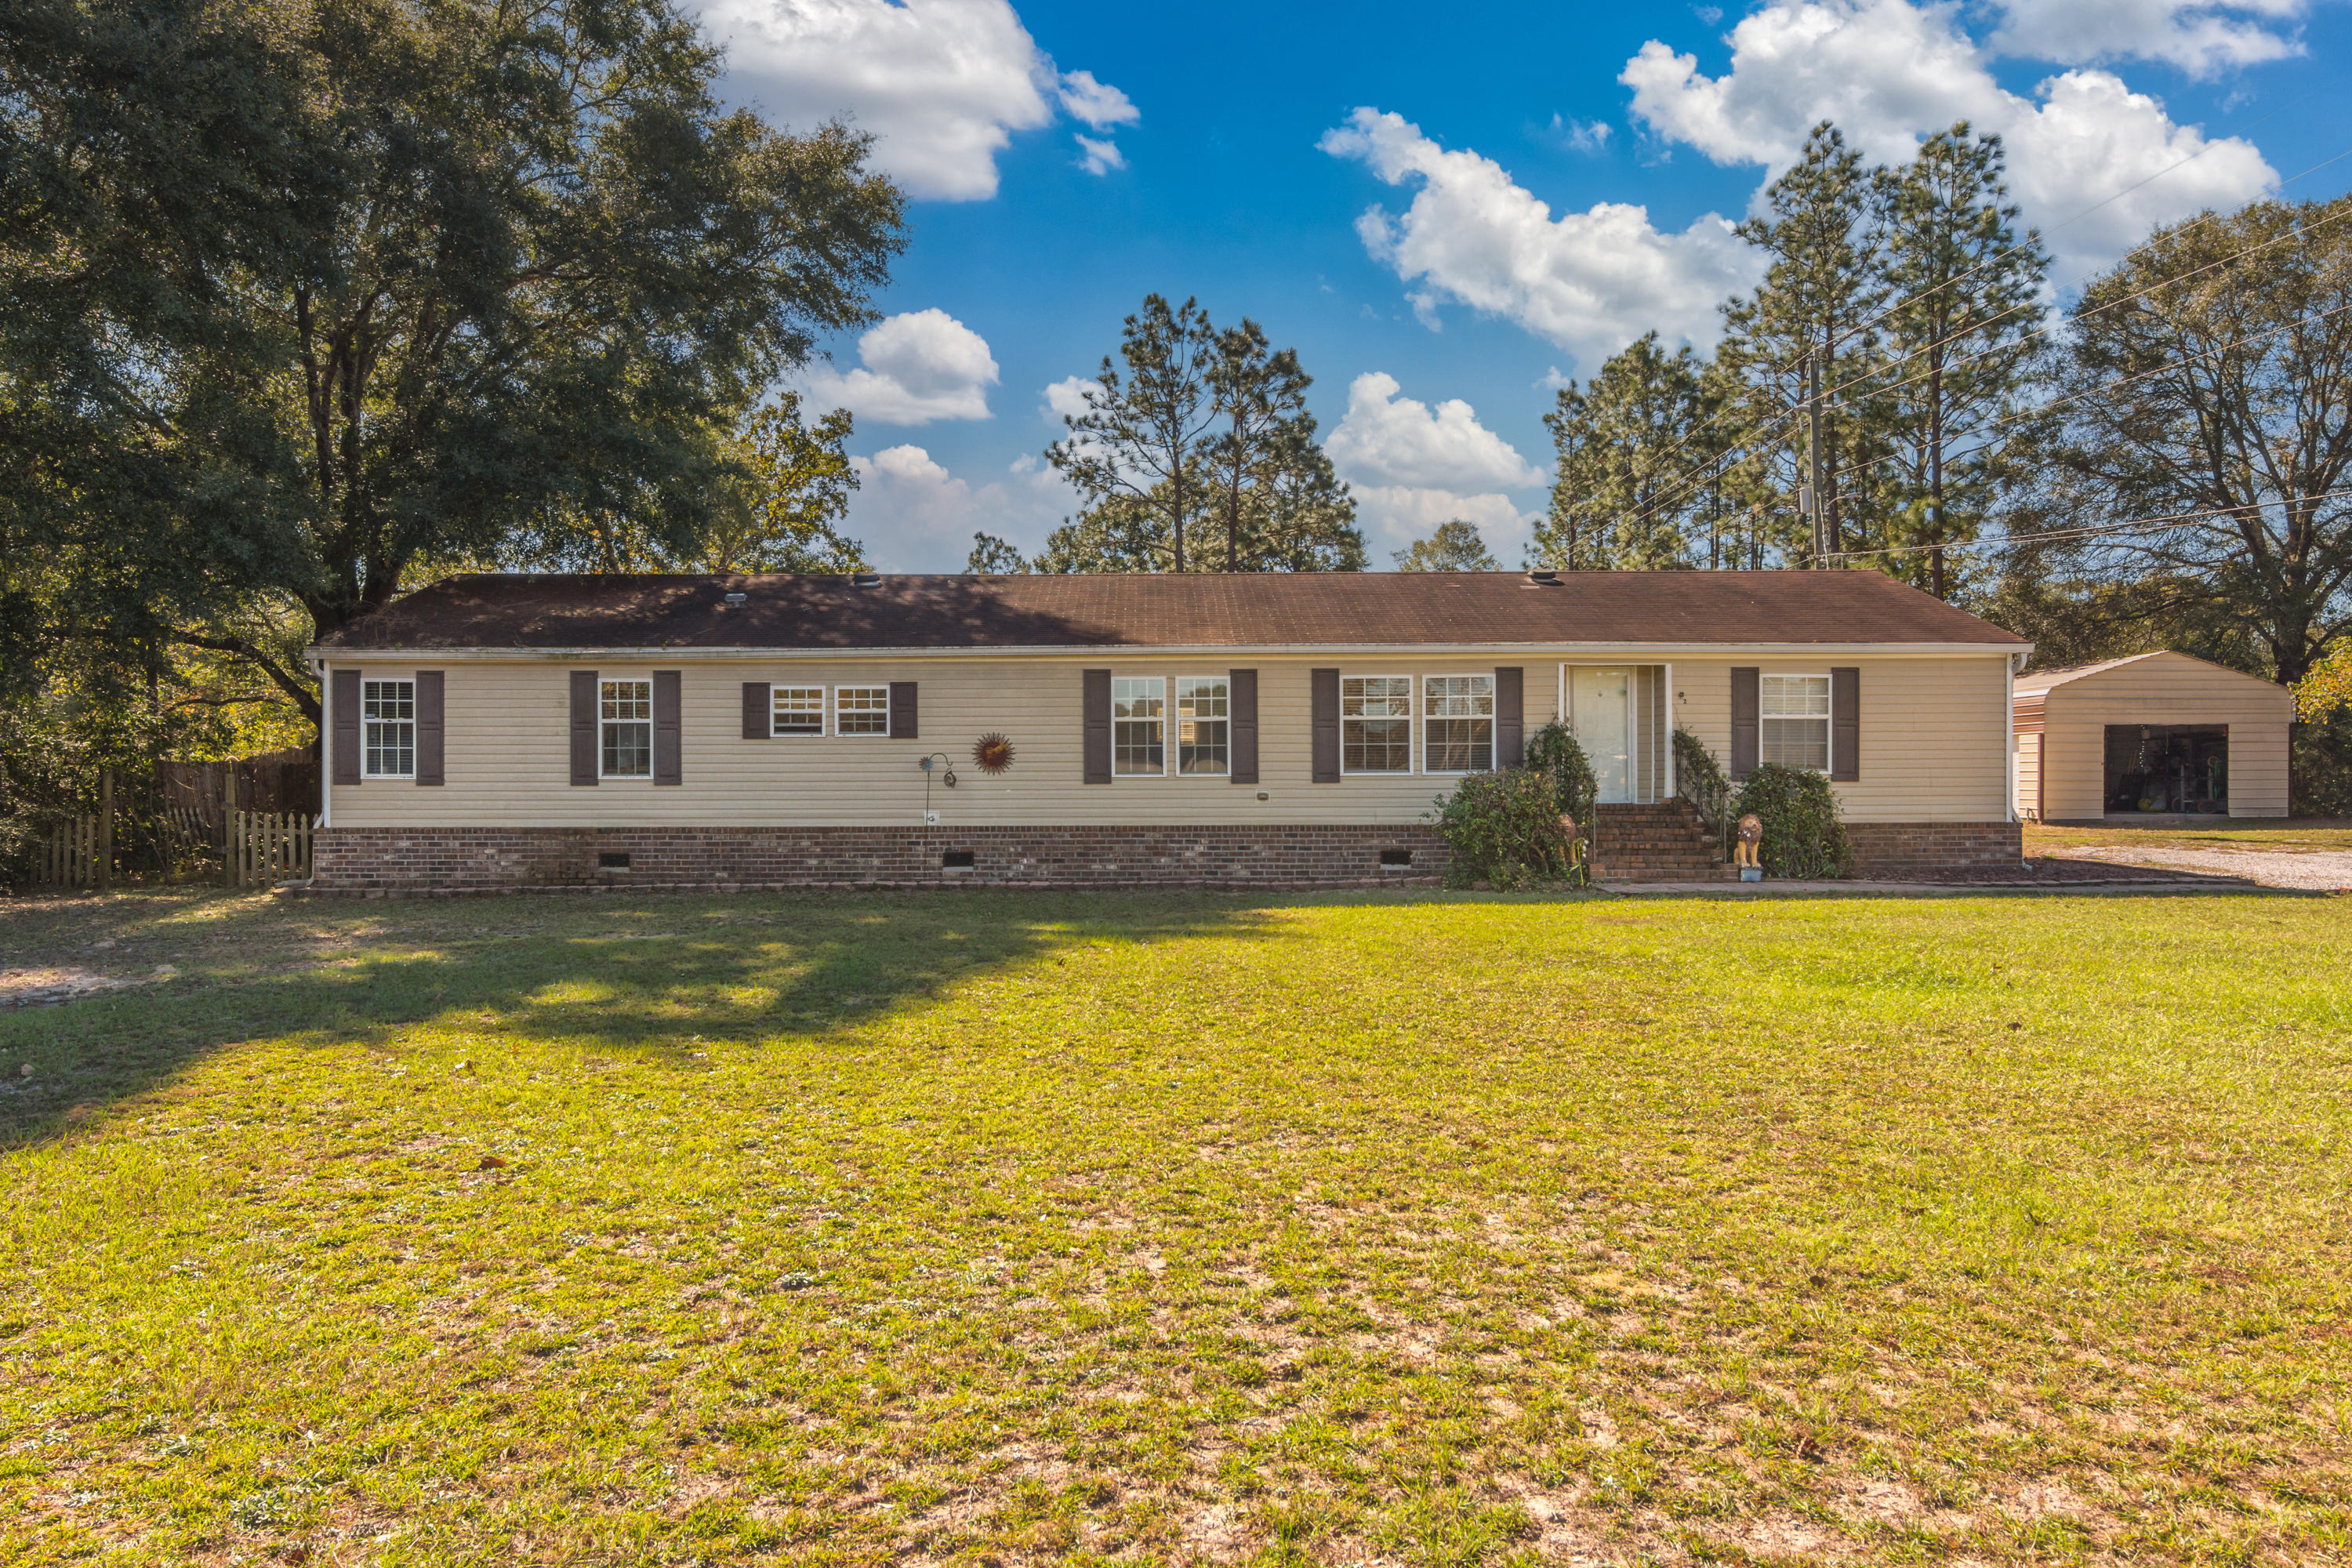 Photo of home for sale at 3526 Horne Hollow, Crestview FL